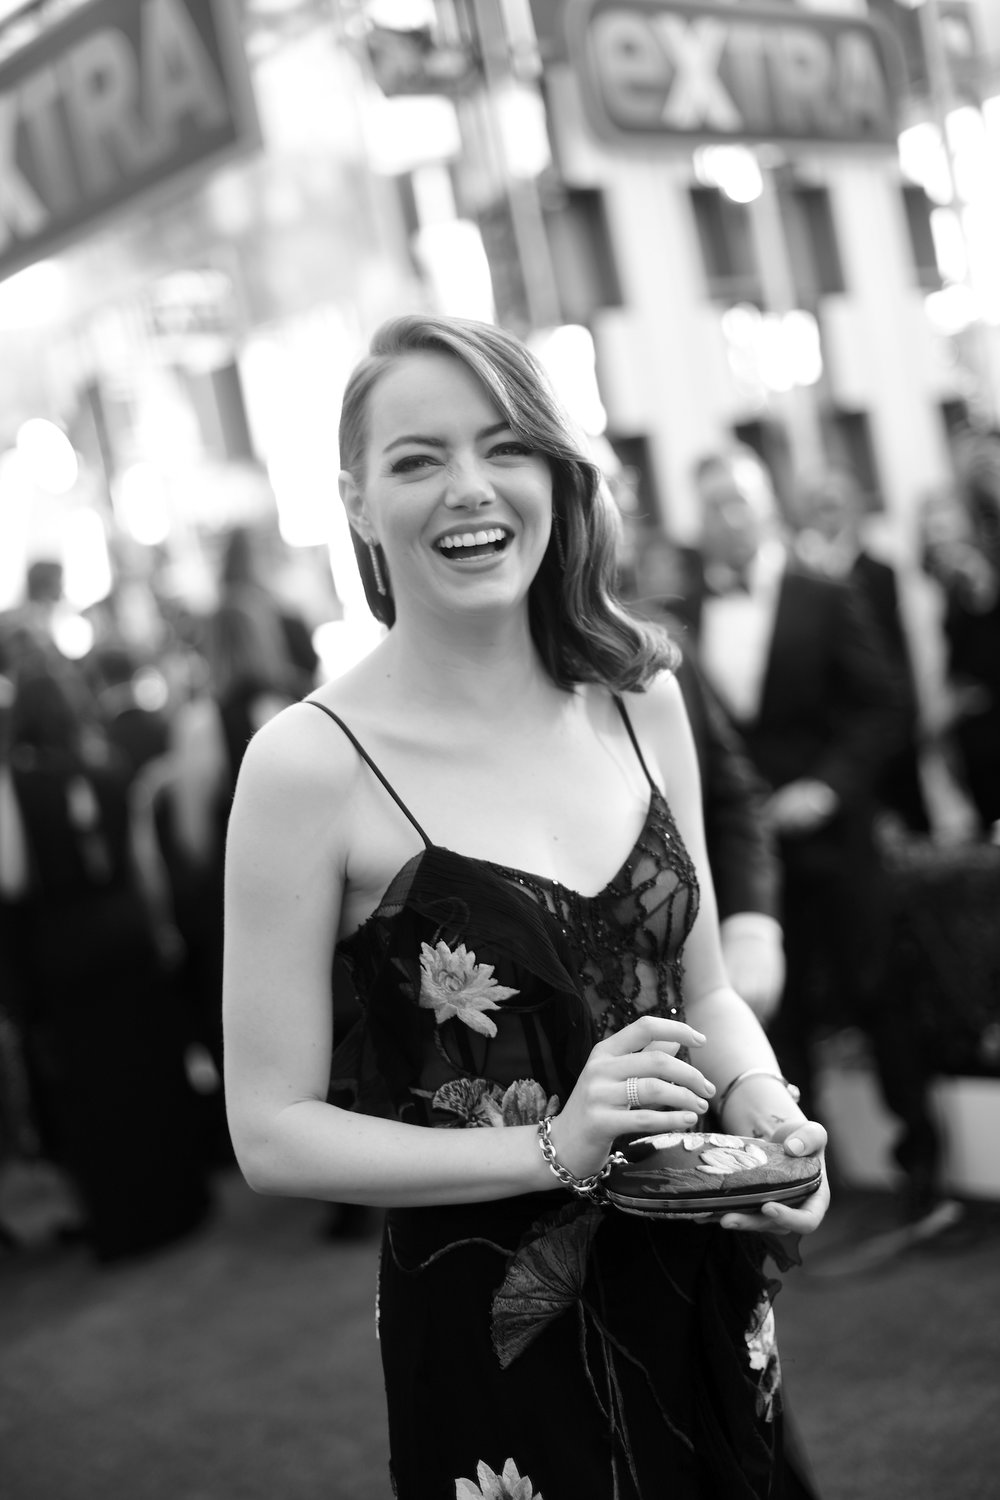 LOS ANGELES, CA - JANUARY 29:  (EDITORS NOTE: Image has been shot in black and white. Color version not available.)    Actor Emma Stone  attends The 23rd Annual Screen Actors Guild Awards at The Shrine Auditorium on January 29, 2017 in Los Angeles, California. 26592_010  (Photo by Charley Gallay/Getty Images for TNT) *** Local Caption *** Emma Stone